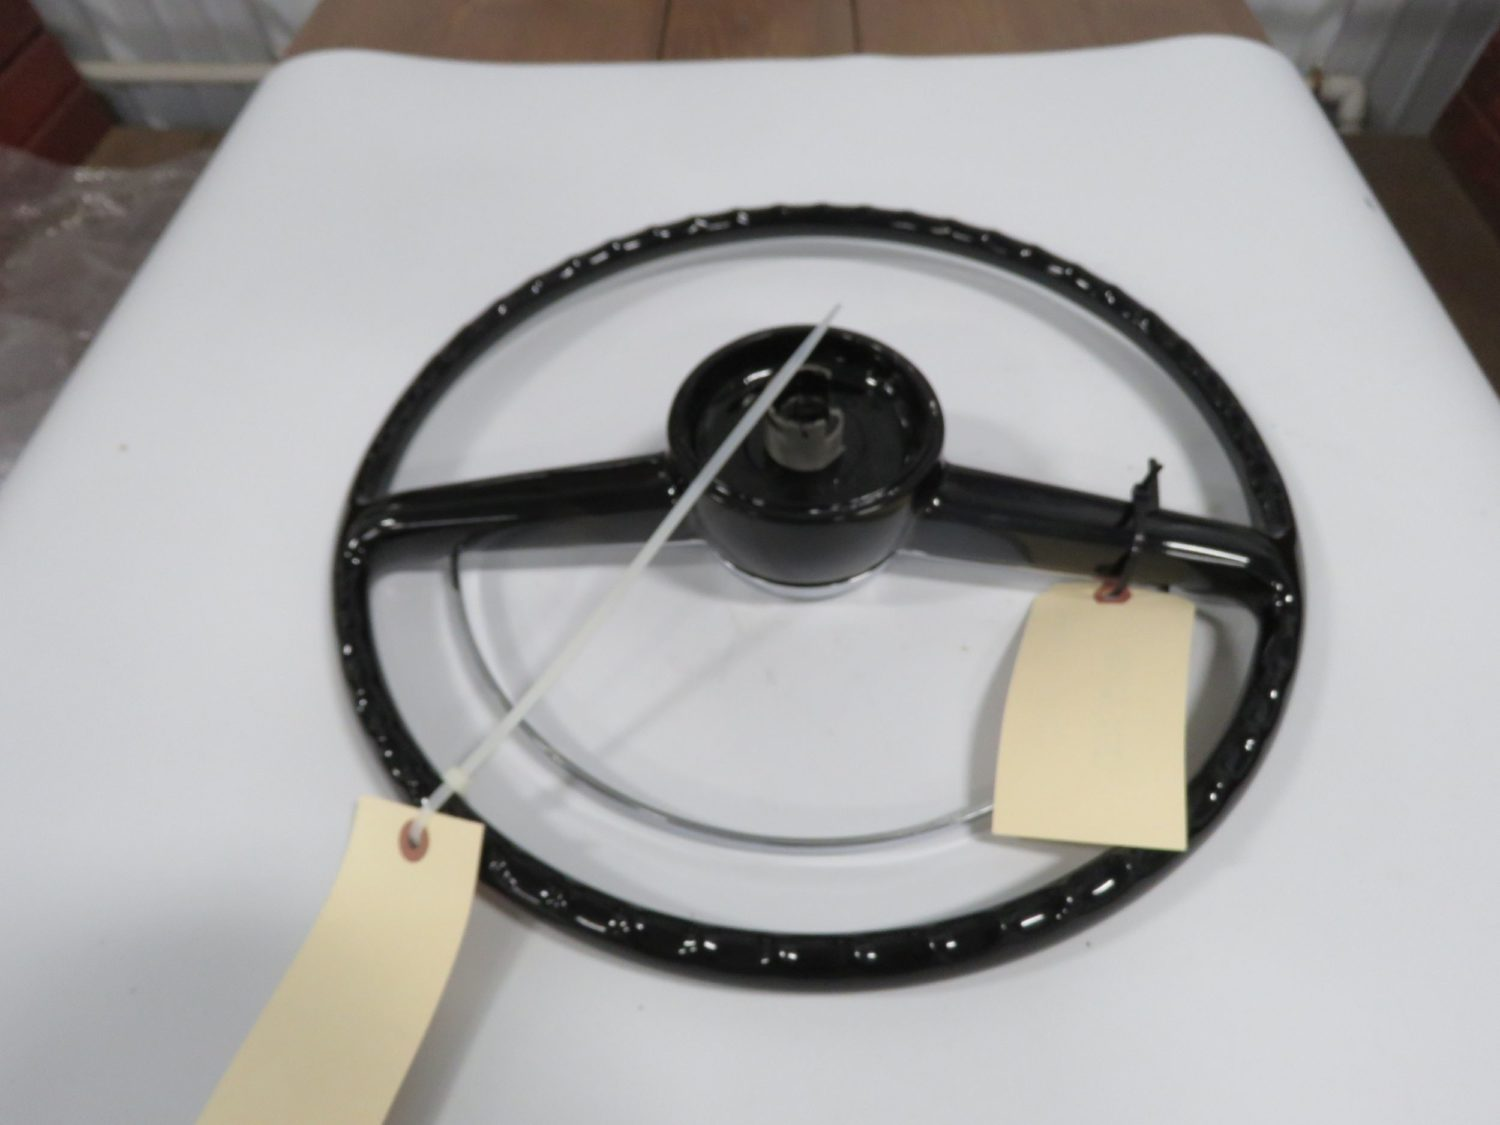 1953 Ford Modified Black 16 inch Steering Wheel - Image 2